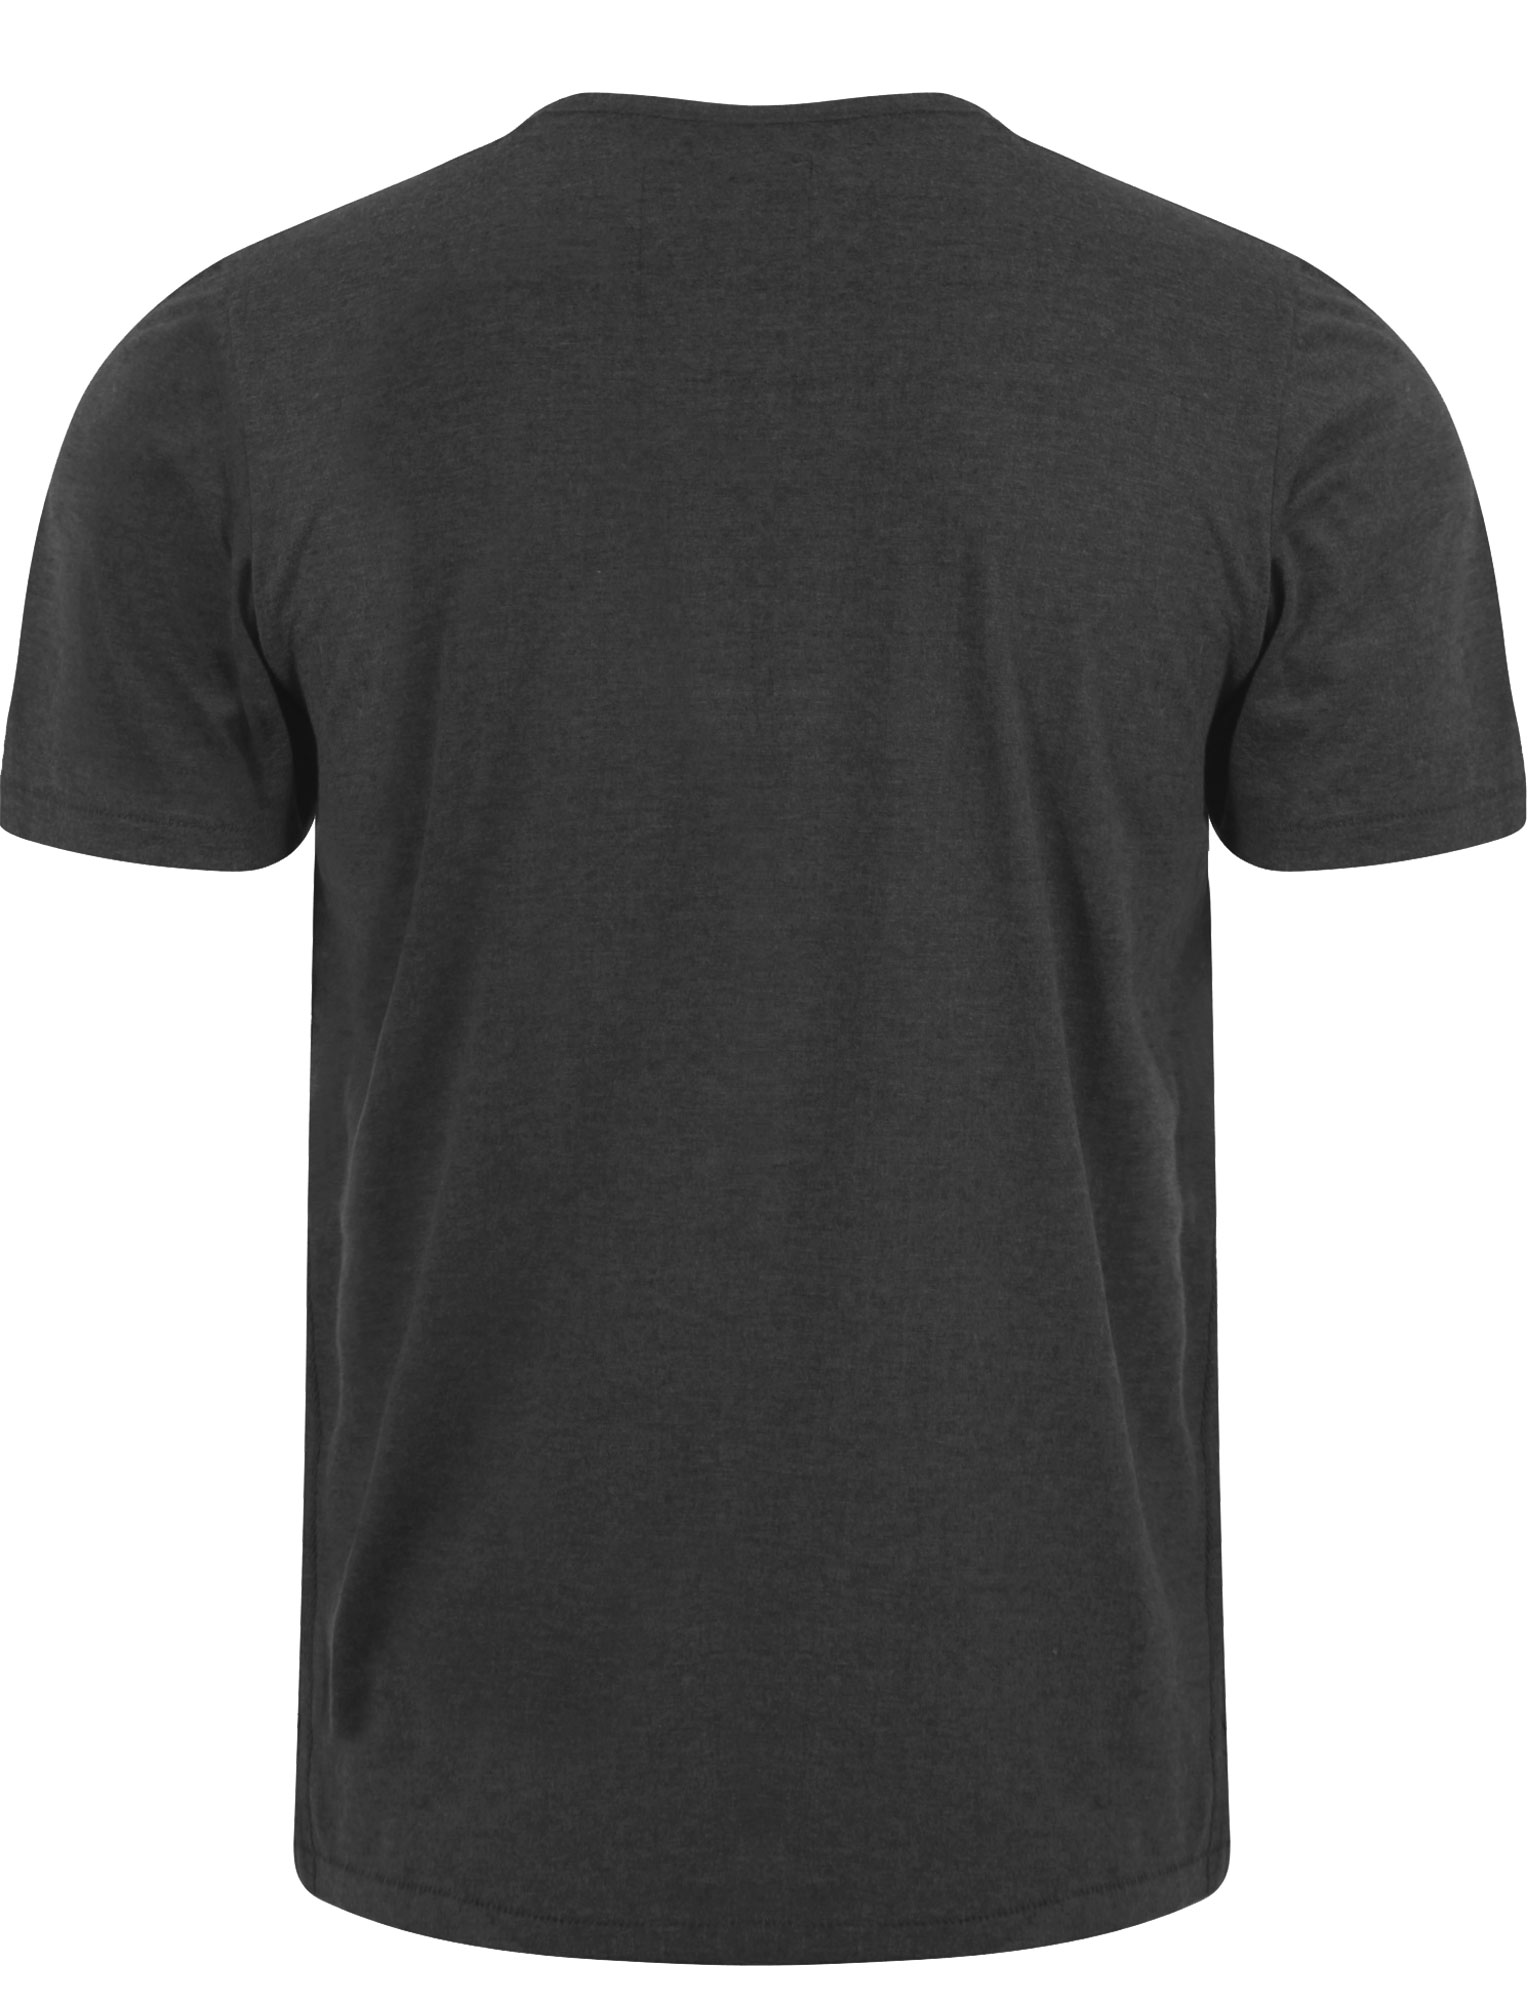 Tokyo-Laundry-unverzichtbares-Basic-Classic-Soft-Tops-T-Shirt-Groesse-S-XXL